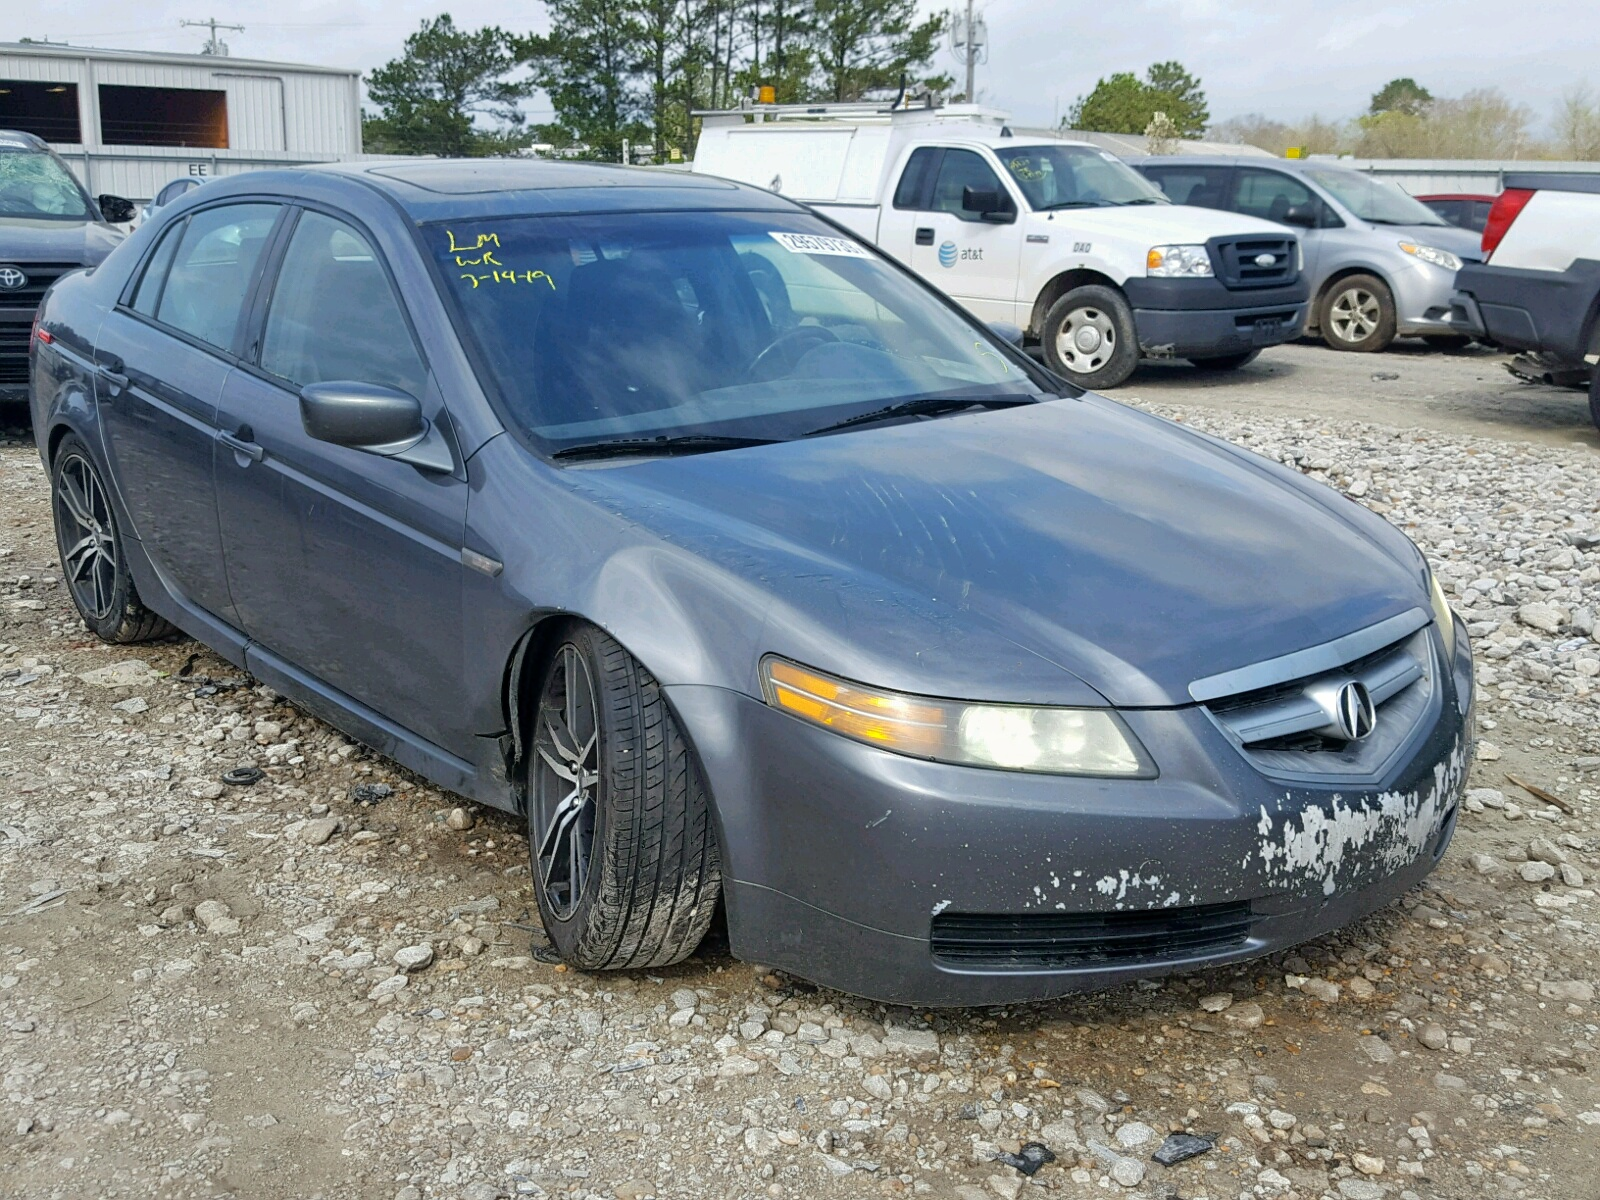 hight resolution of 19uua66225a060004 2005 acura tl 3 2l left view 19uua66225a060004